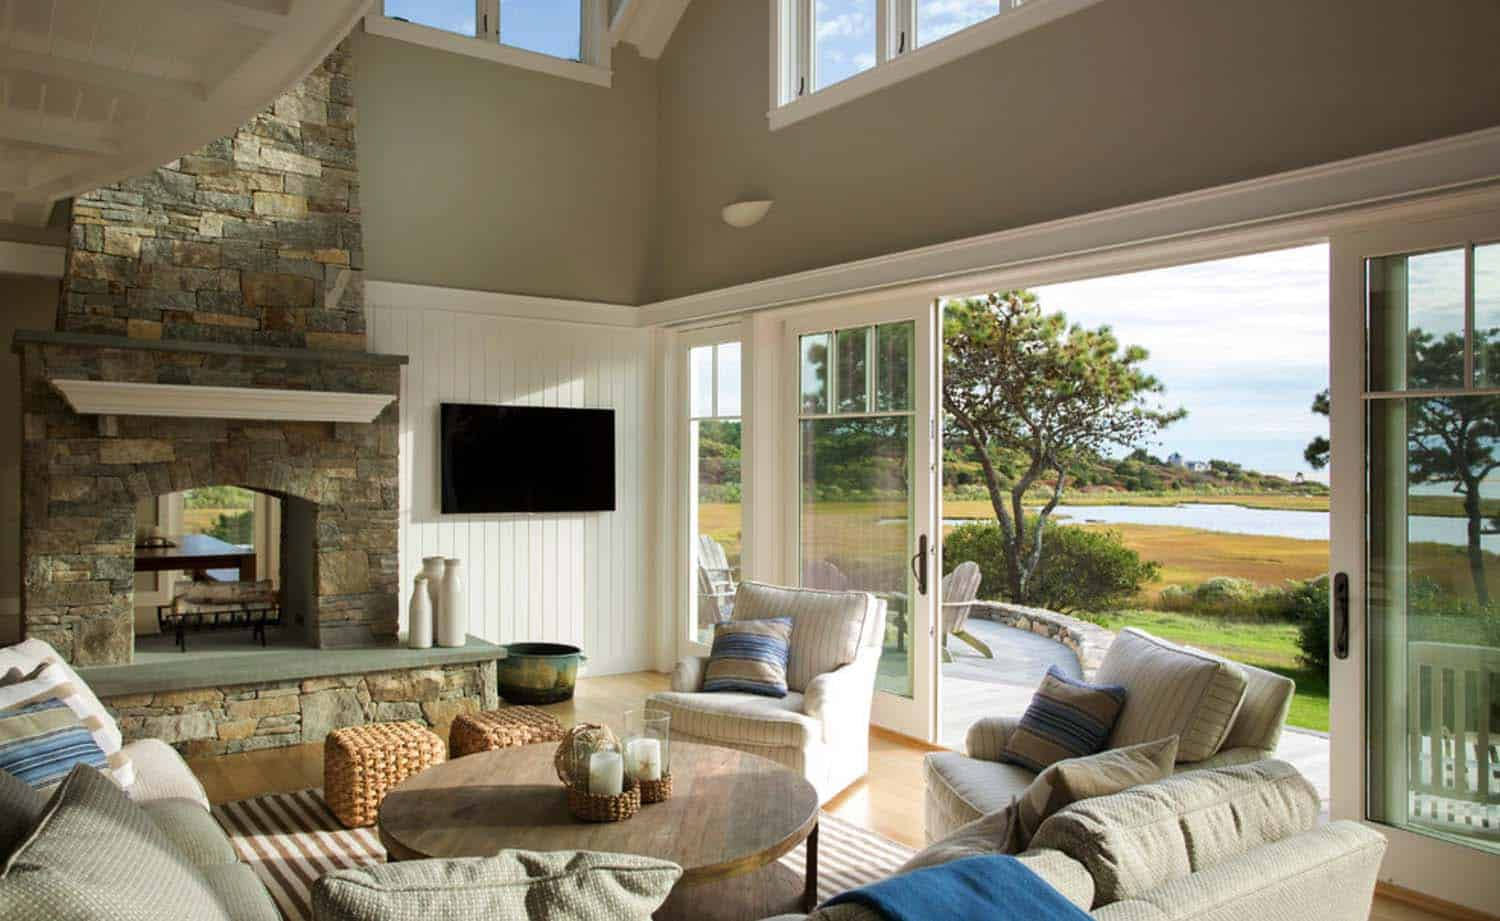 Beach House-Marthas Vineyard Interior Design-01-1 Kindesign